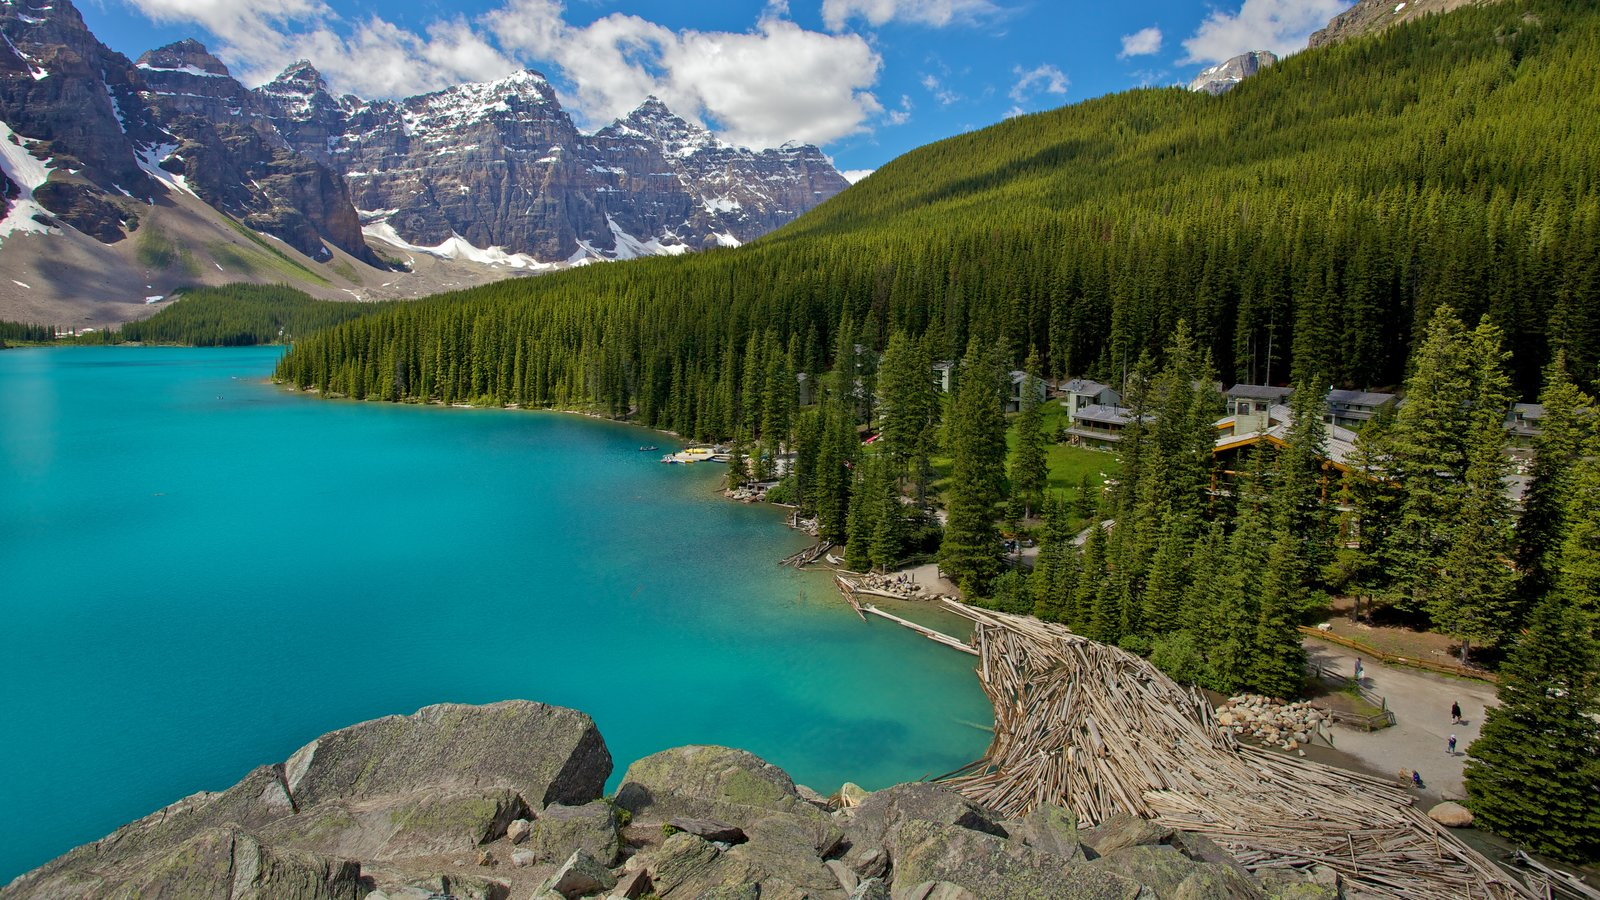 Moraine Lake which includes landscape views, mountains and a lake or waterhole